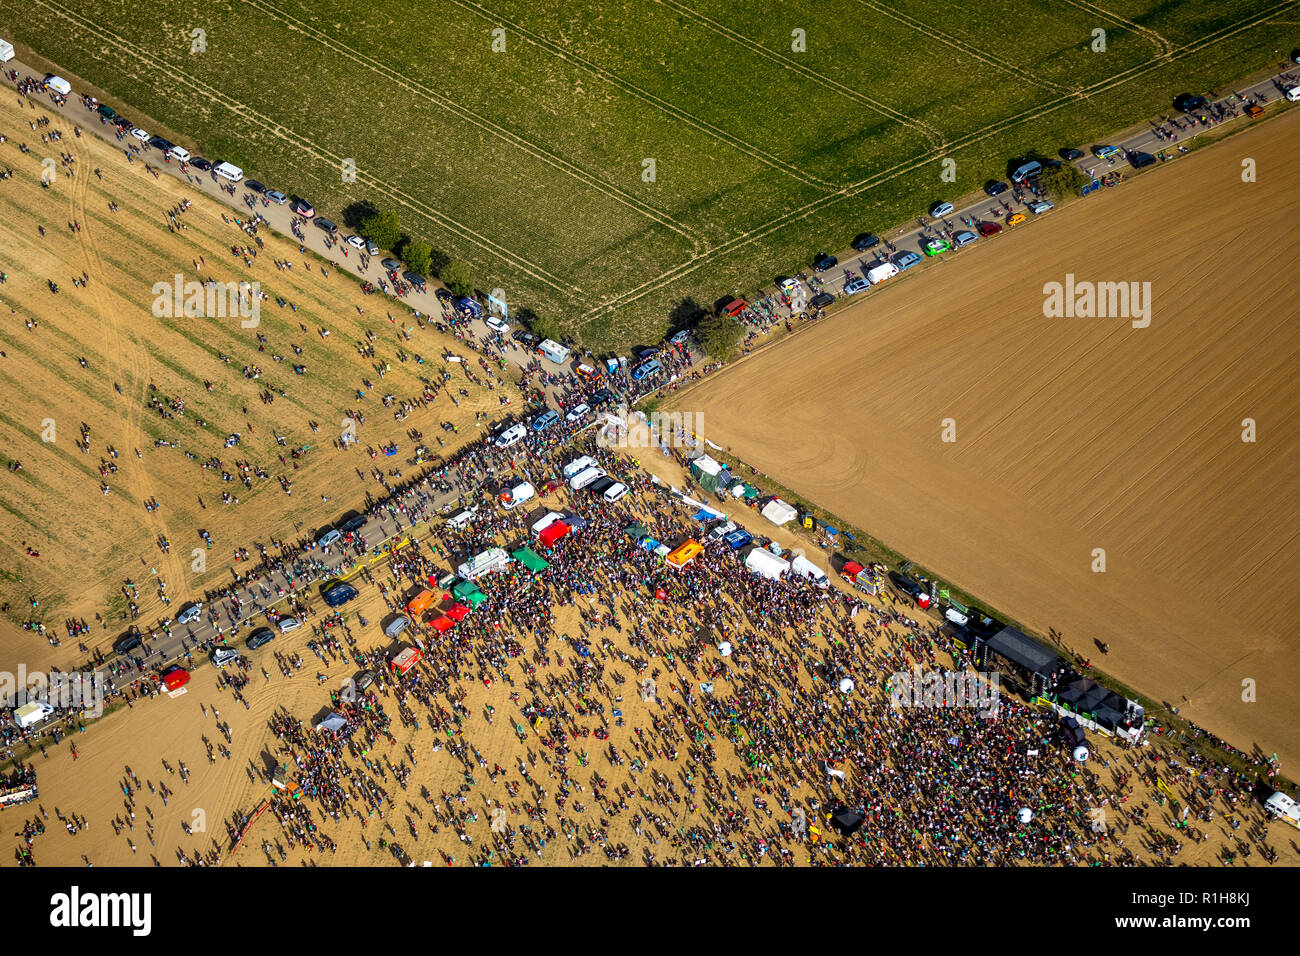 Many people on large-scale demonstration against the clearing of the Hambach forest, brown coal area, Hambach, Hambacher Forst - Stock Image